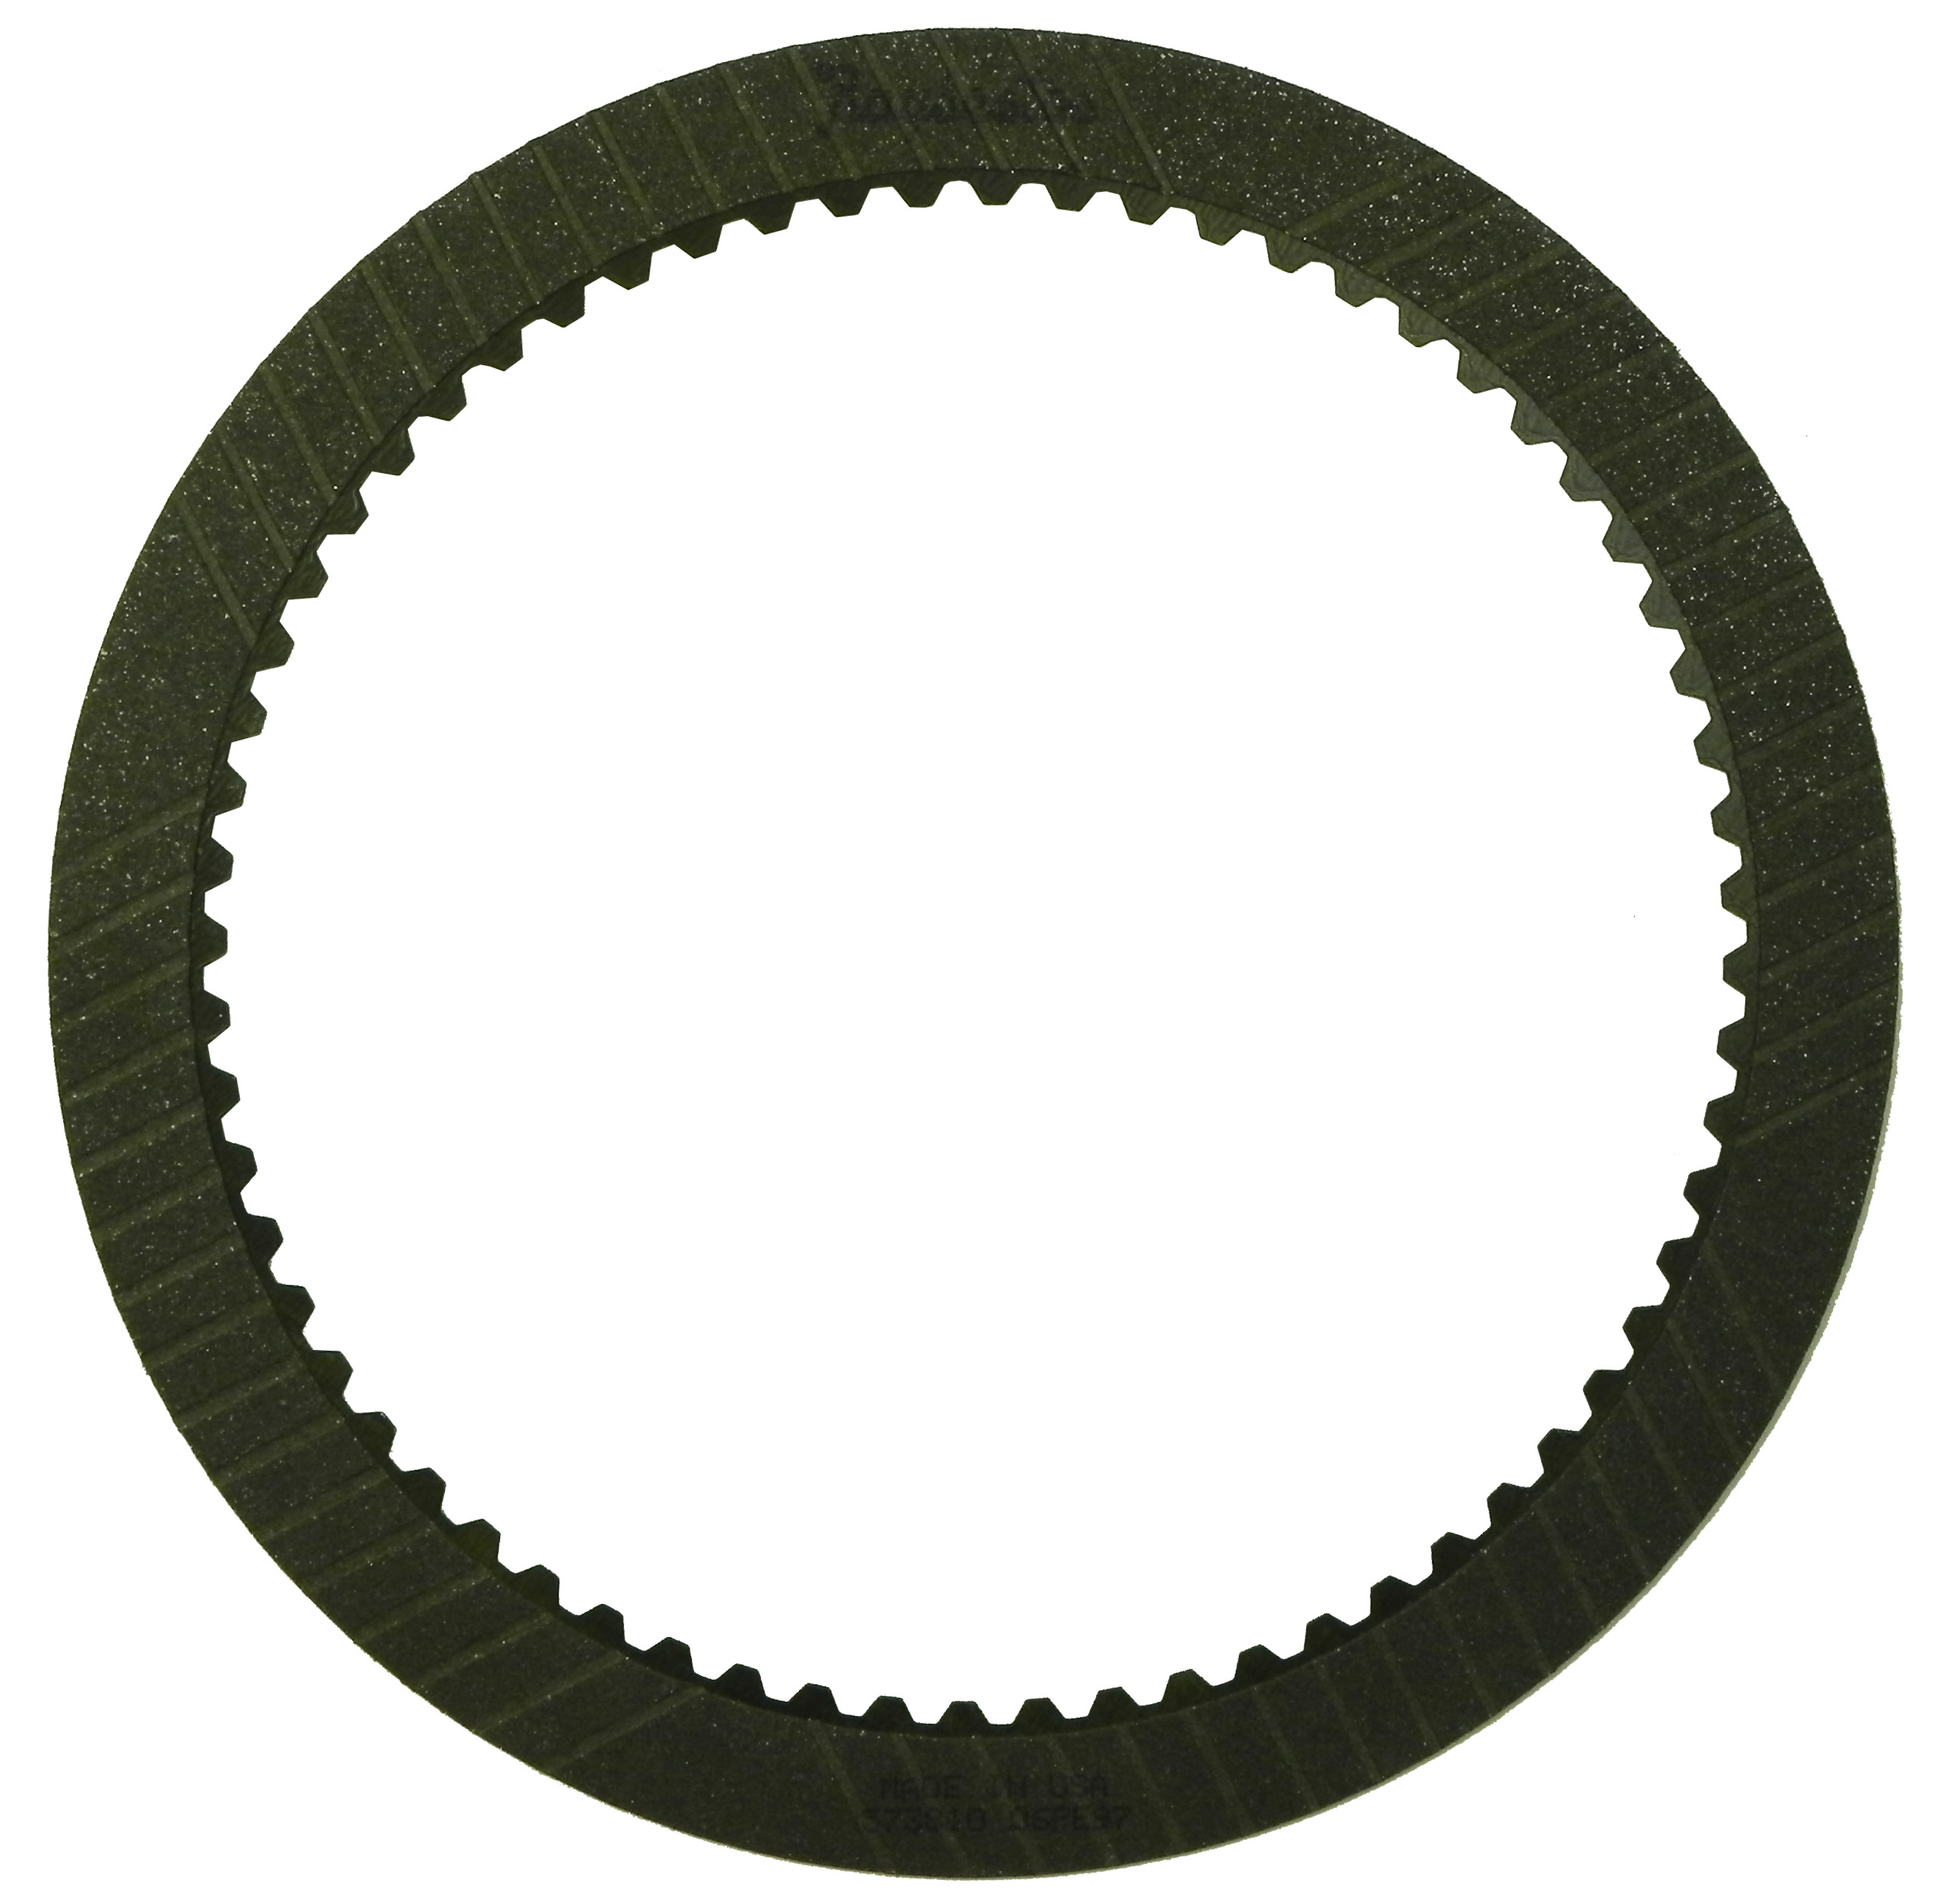 R573810 | 1988-2002 Friction Clutch Plate OE Replacement Reverse Graphiti (Infiniti, Twin Turbo)